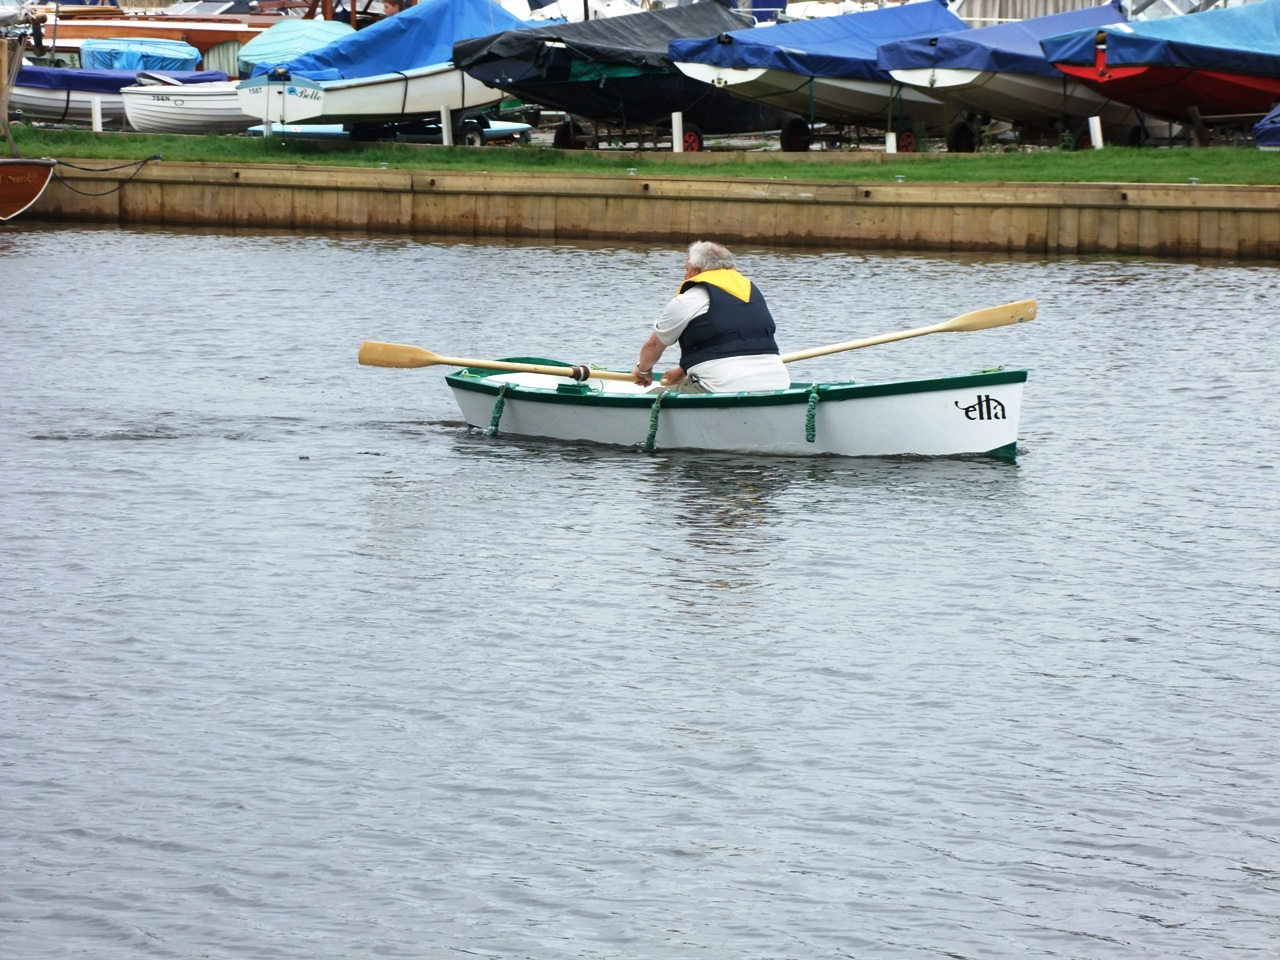 We try the rowing version of the Ella stitch and glue skiff at Barton